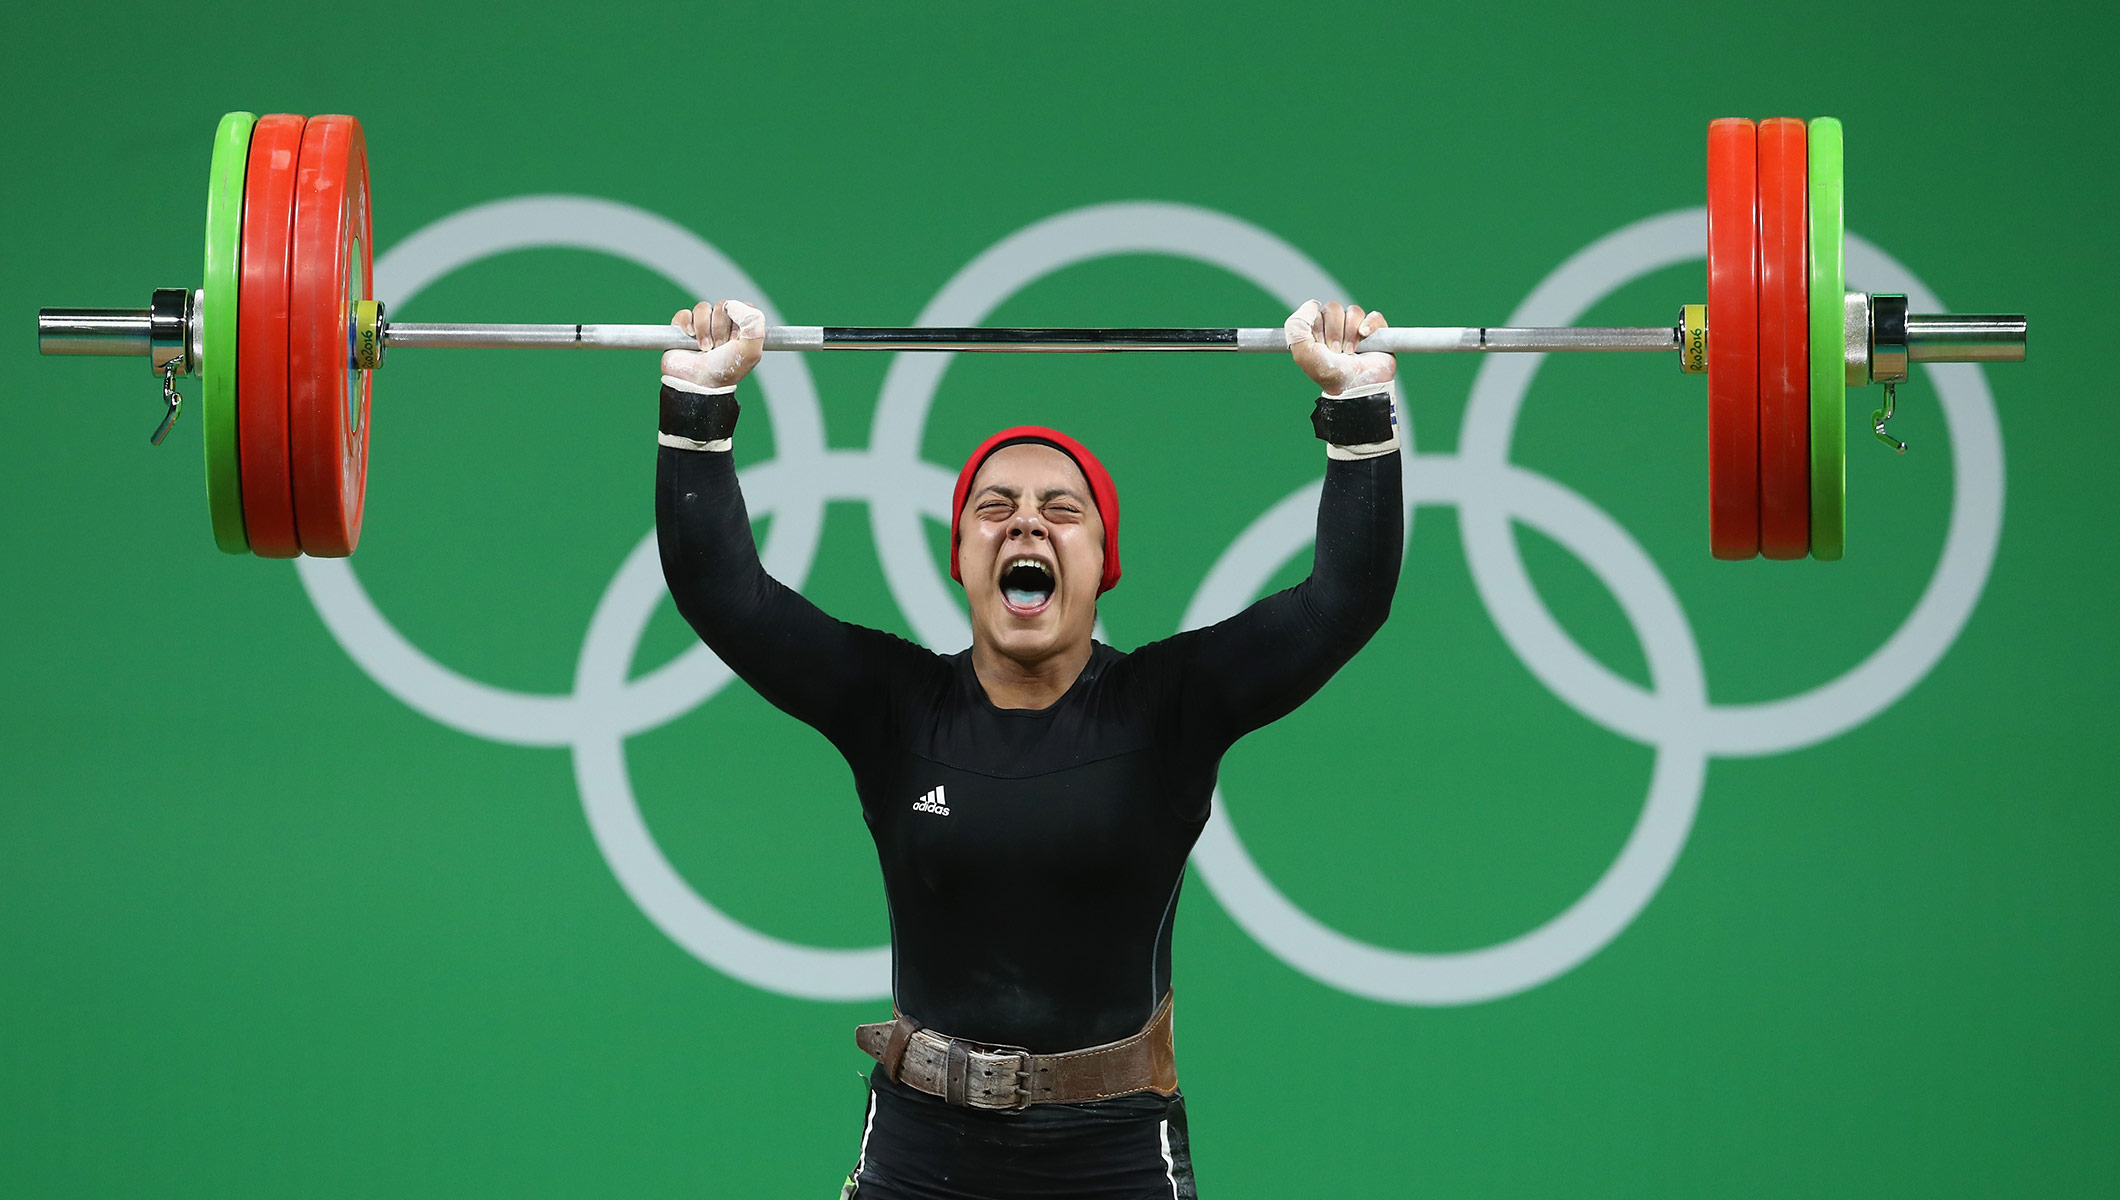 YOG weightlifter Sara Ahmed blazes a trail for Egyptian athletes - Olympic  News